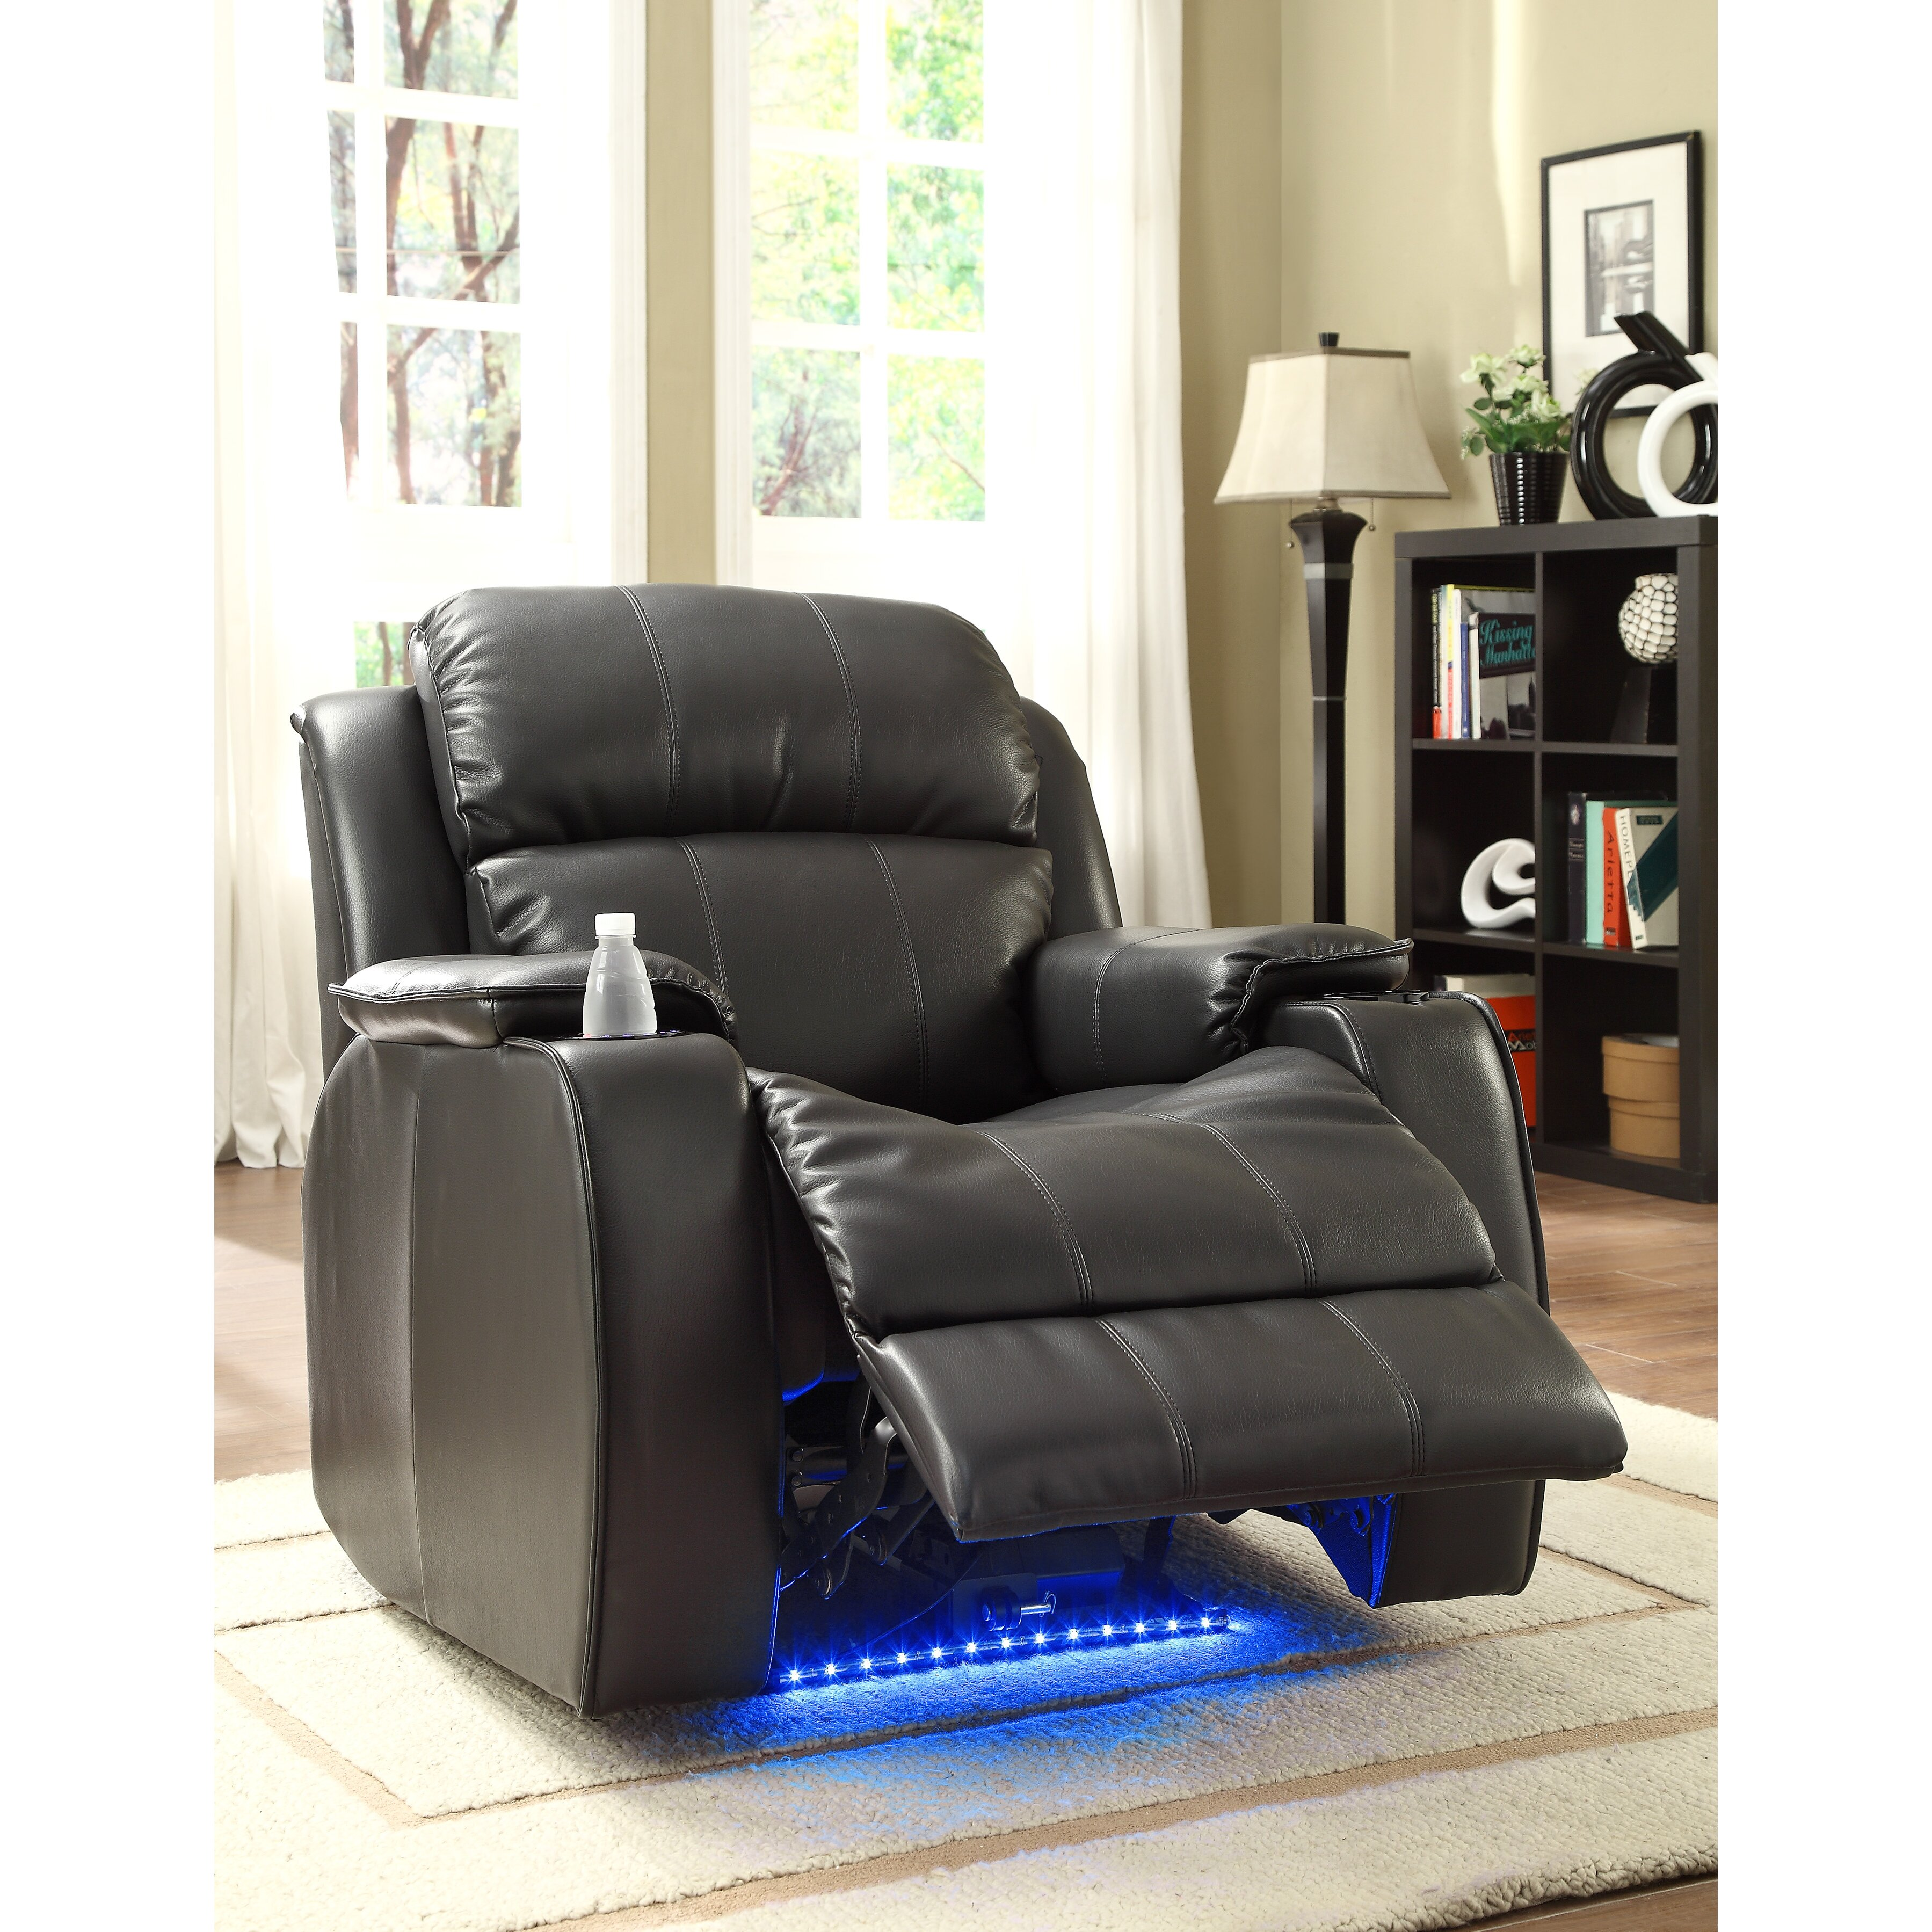 Jimmy Power With Massage Led And Cup Holder Recliner